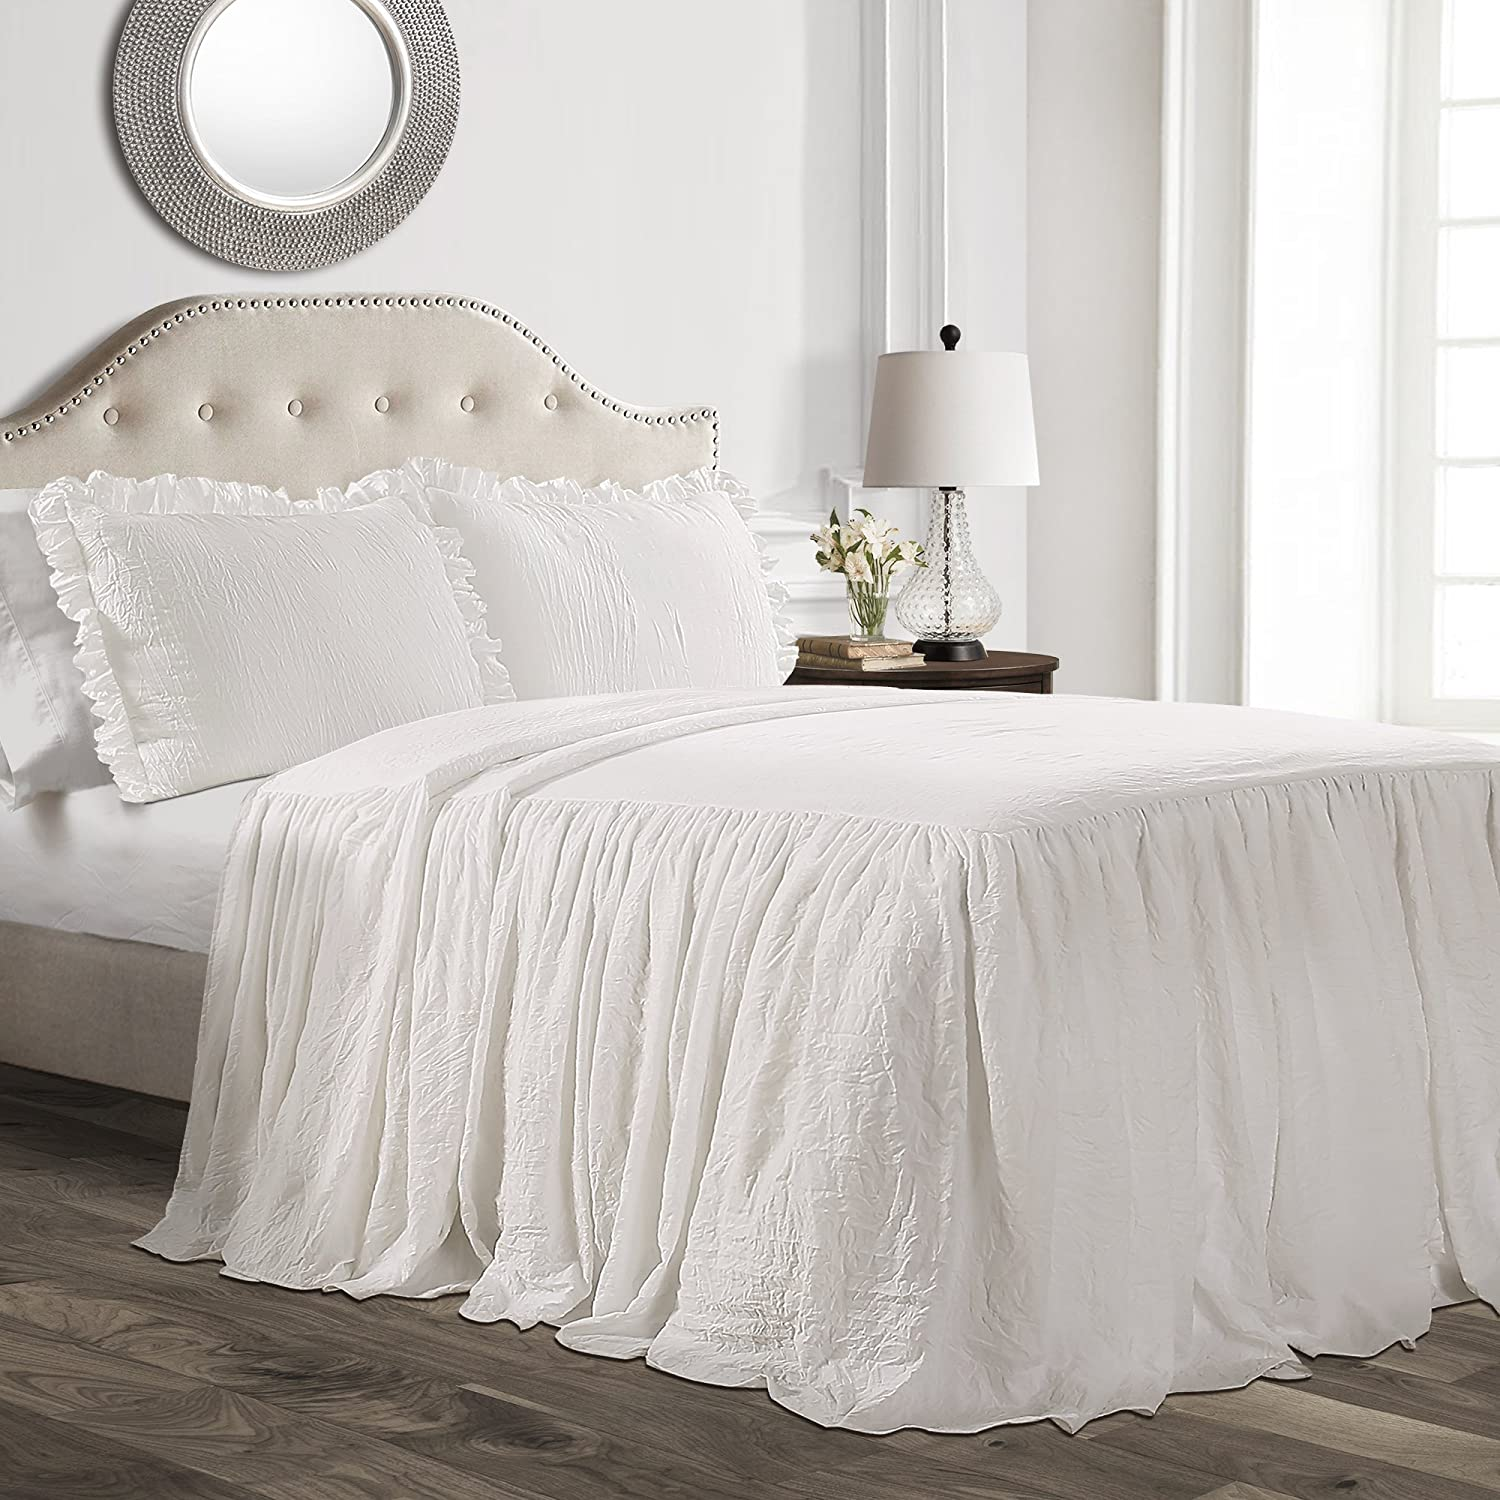 Lush Decor Ruffle Skirt Bedspread White Shabby Chic Farmhouse Style Lightweight 3 Piece Set, Queen